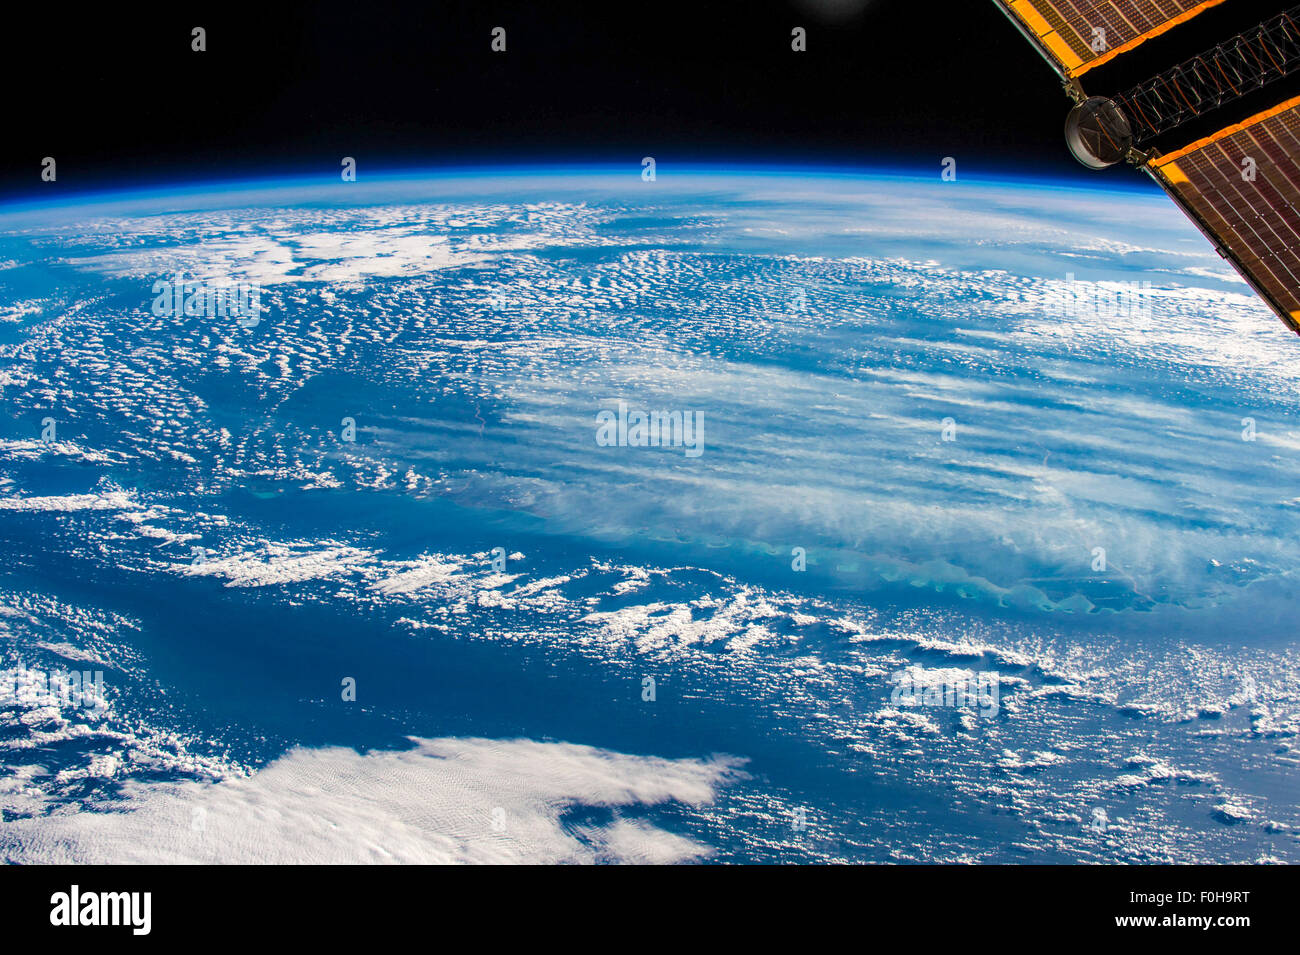 Planet Earth and view from the International Space Station ISS. Elements of this image provided by NASA - Stock Image